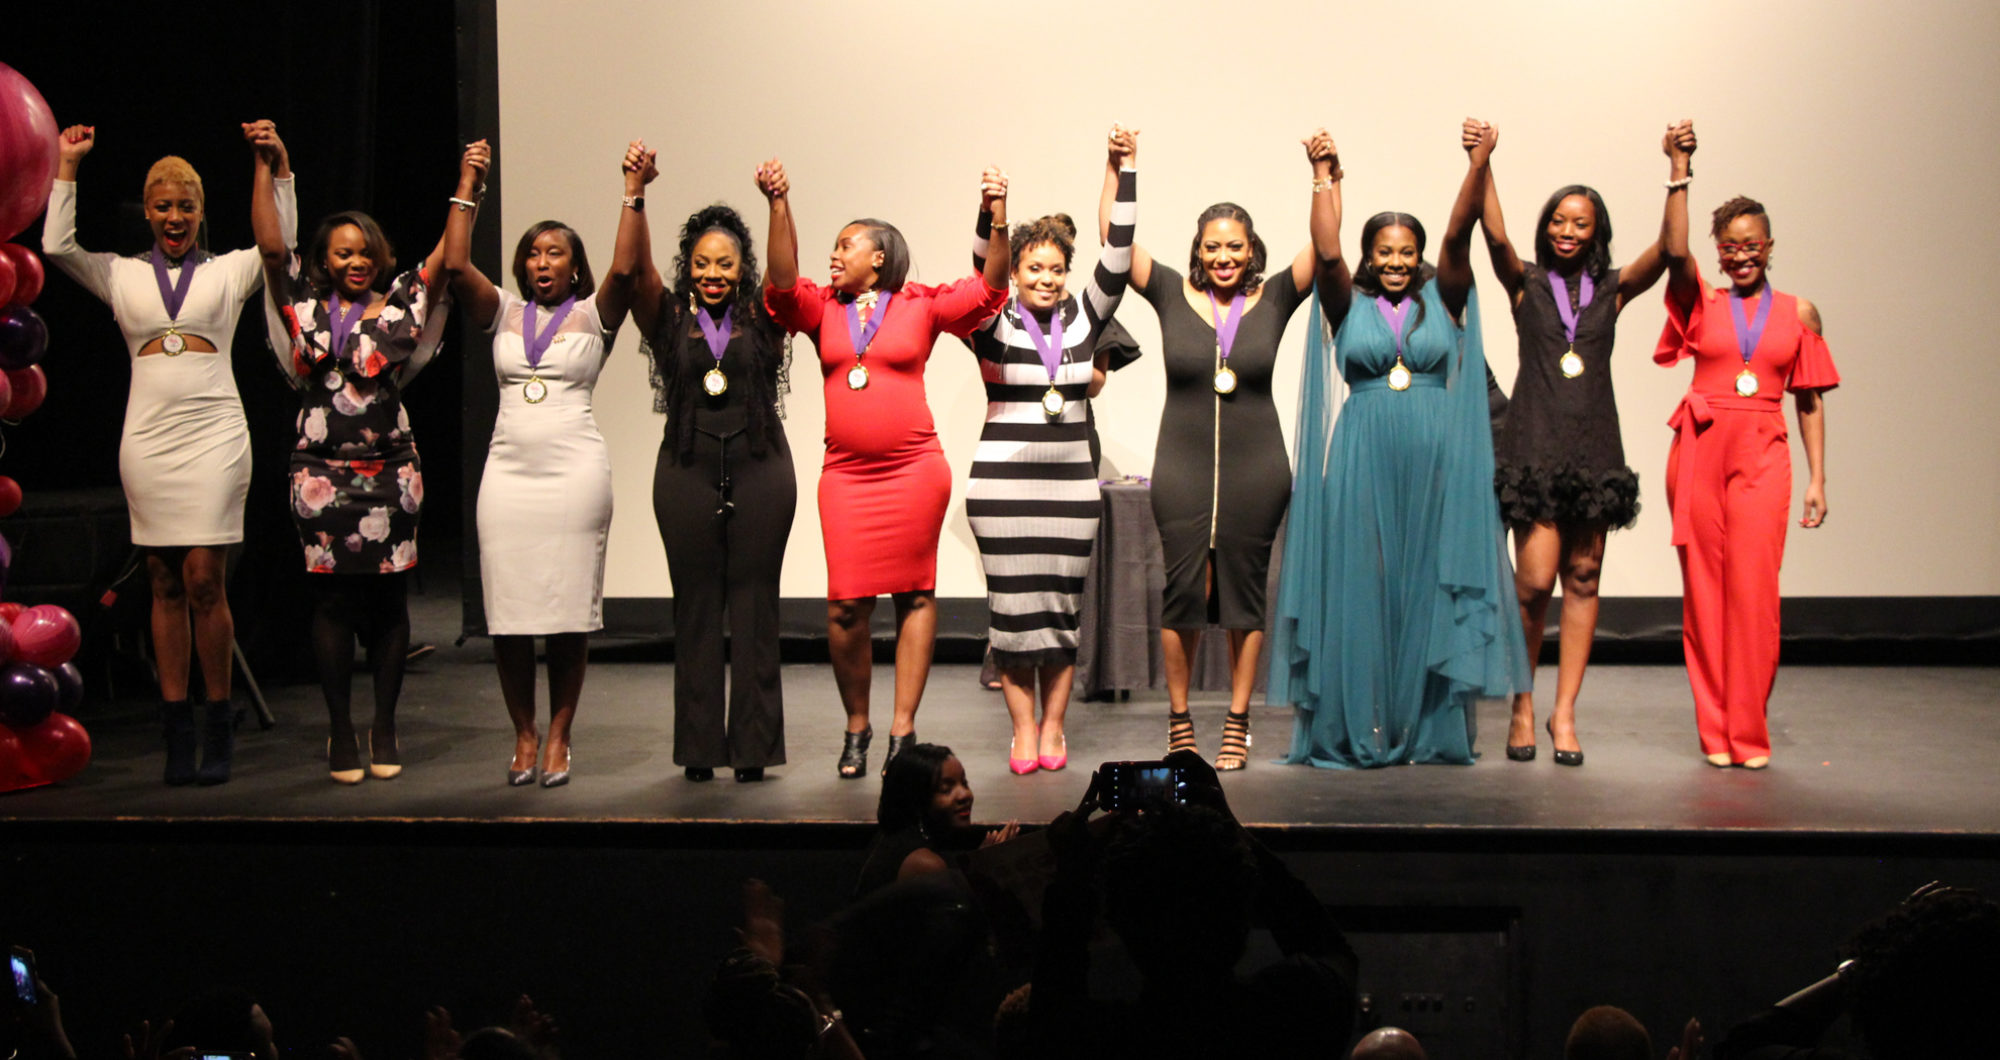 Young Women Professionals League 40 Under 40 Awards